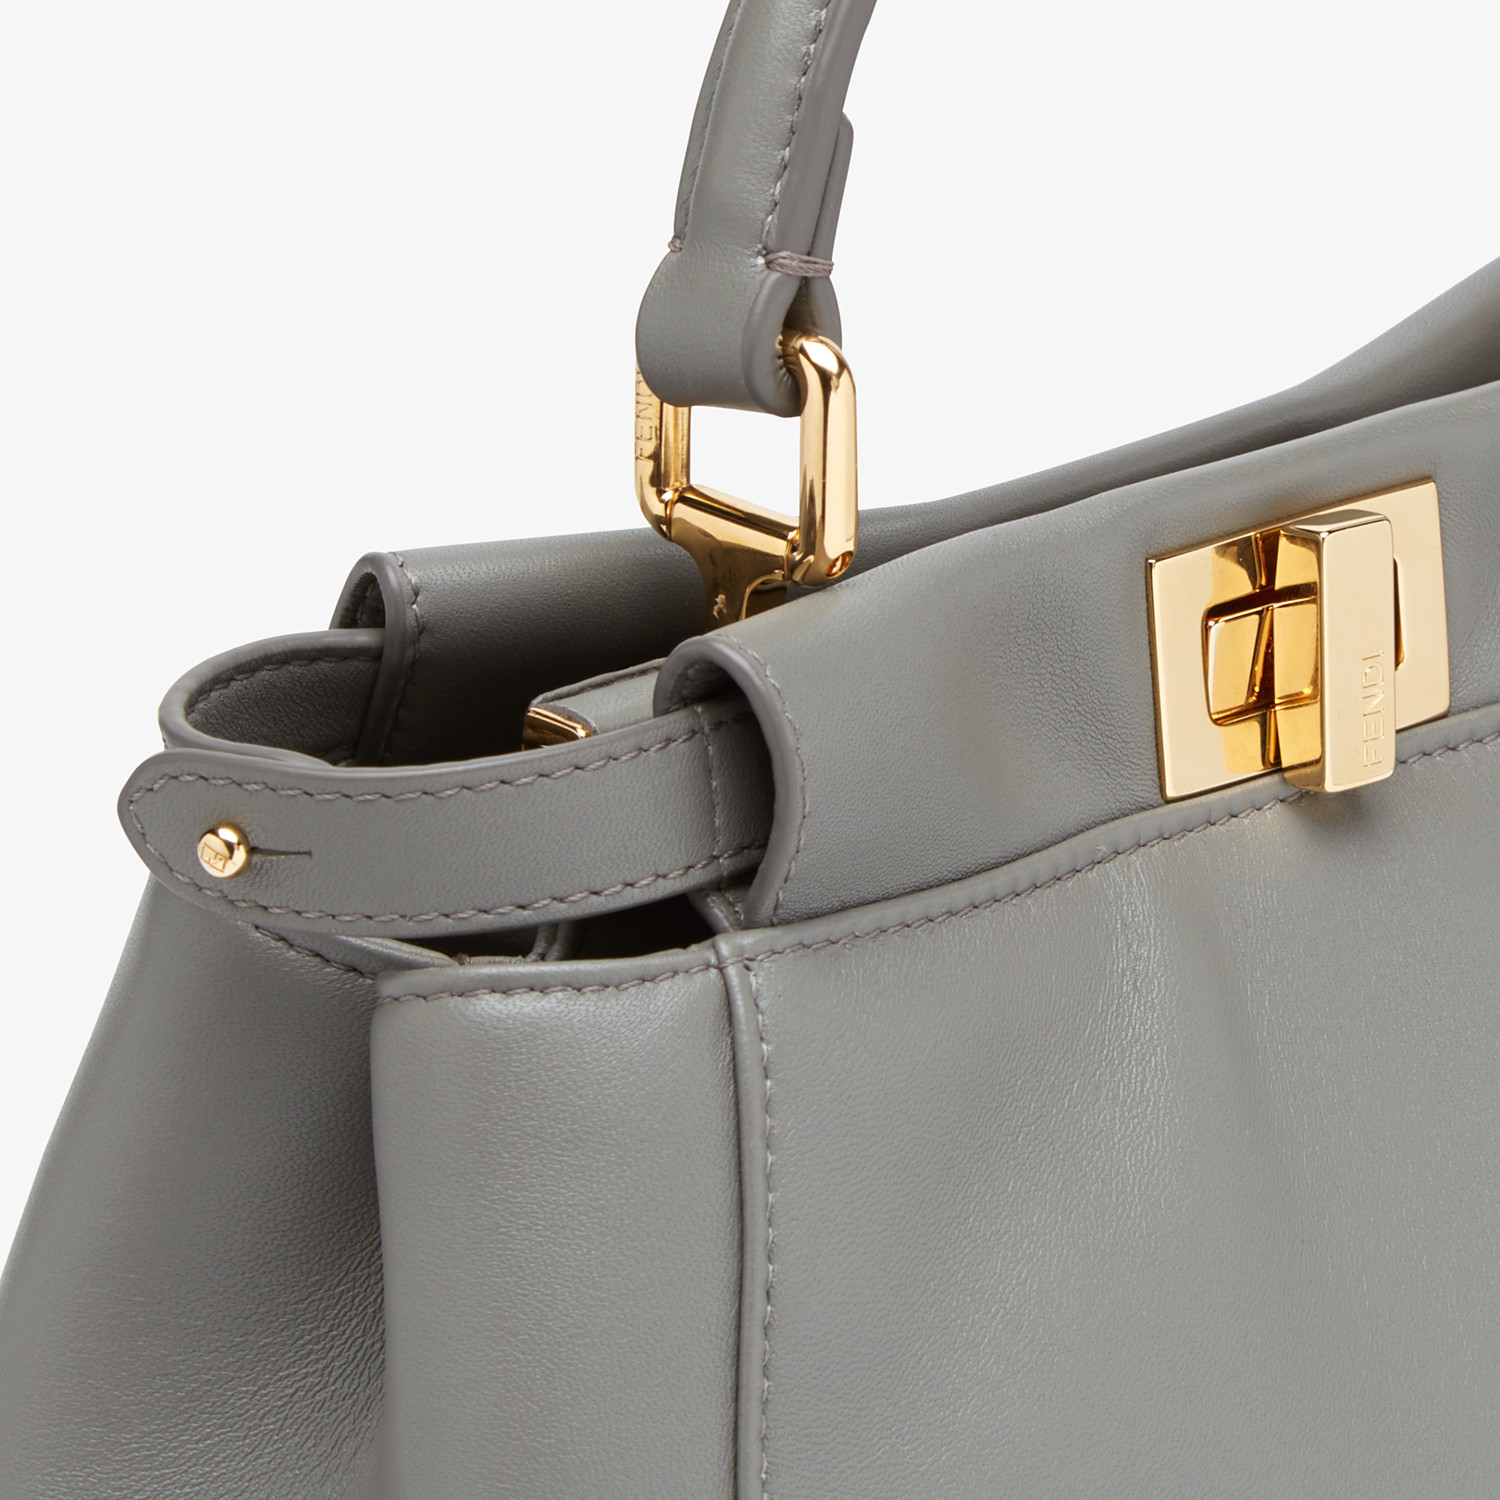 FENDI PEEKABOO ICONIC MINI - Grey nappa leather bag - view 6 detail